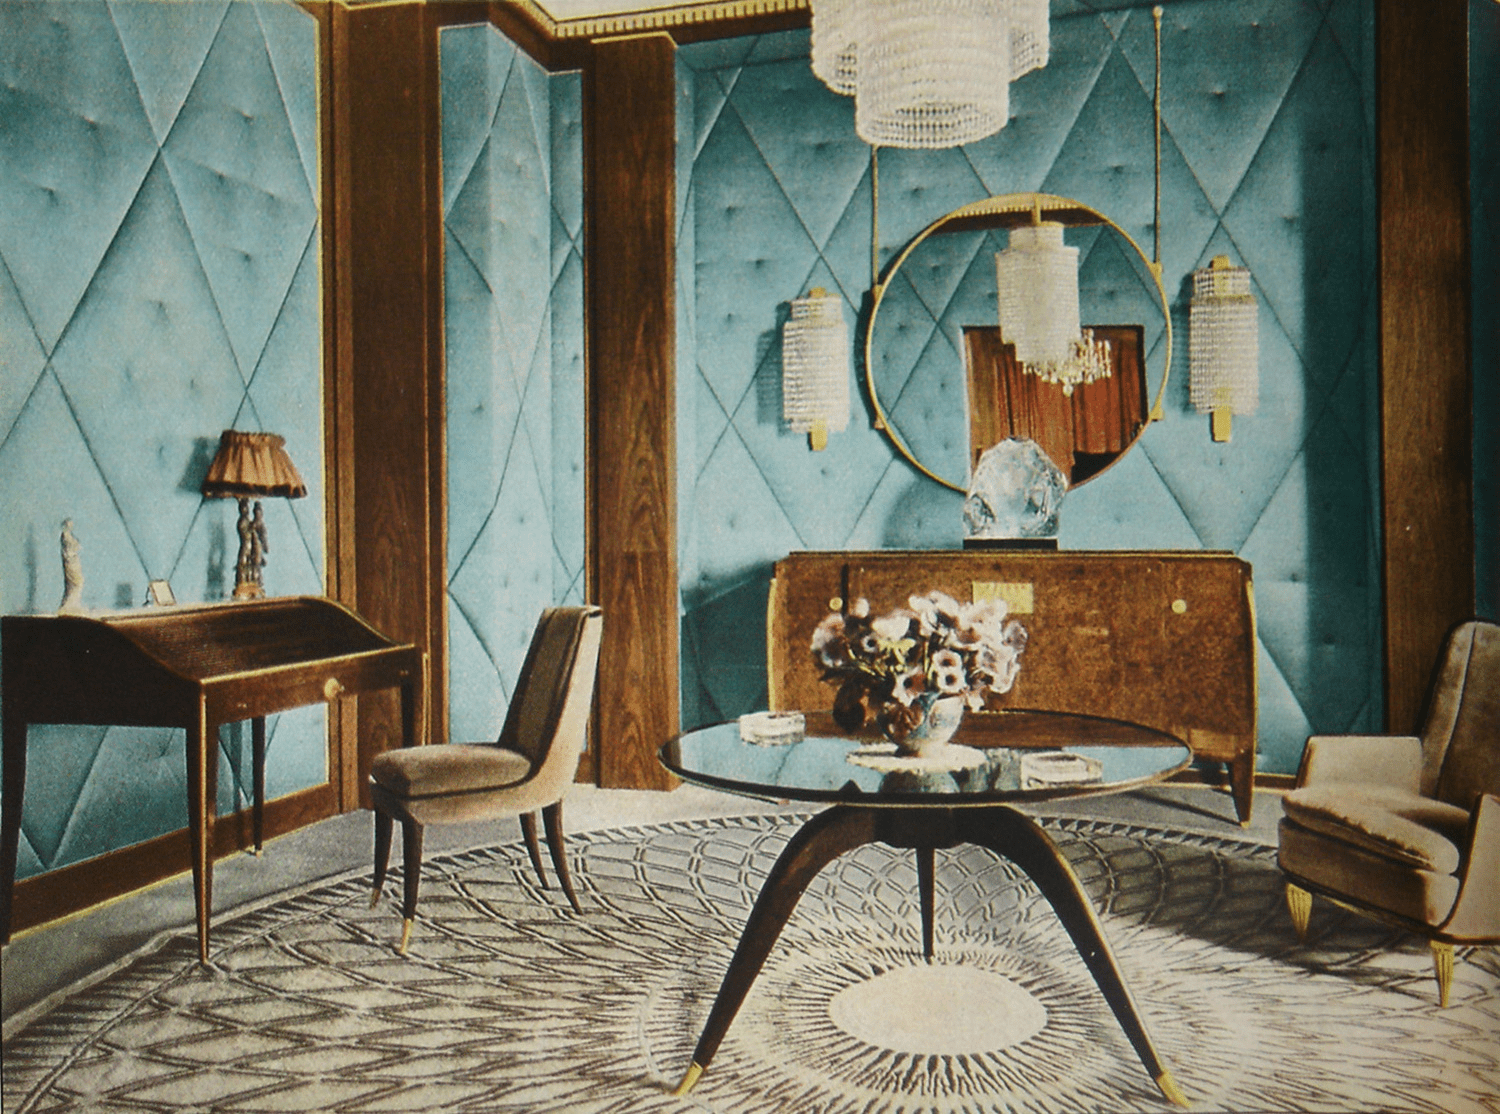 Art deco | Floorscapes